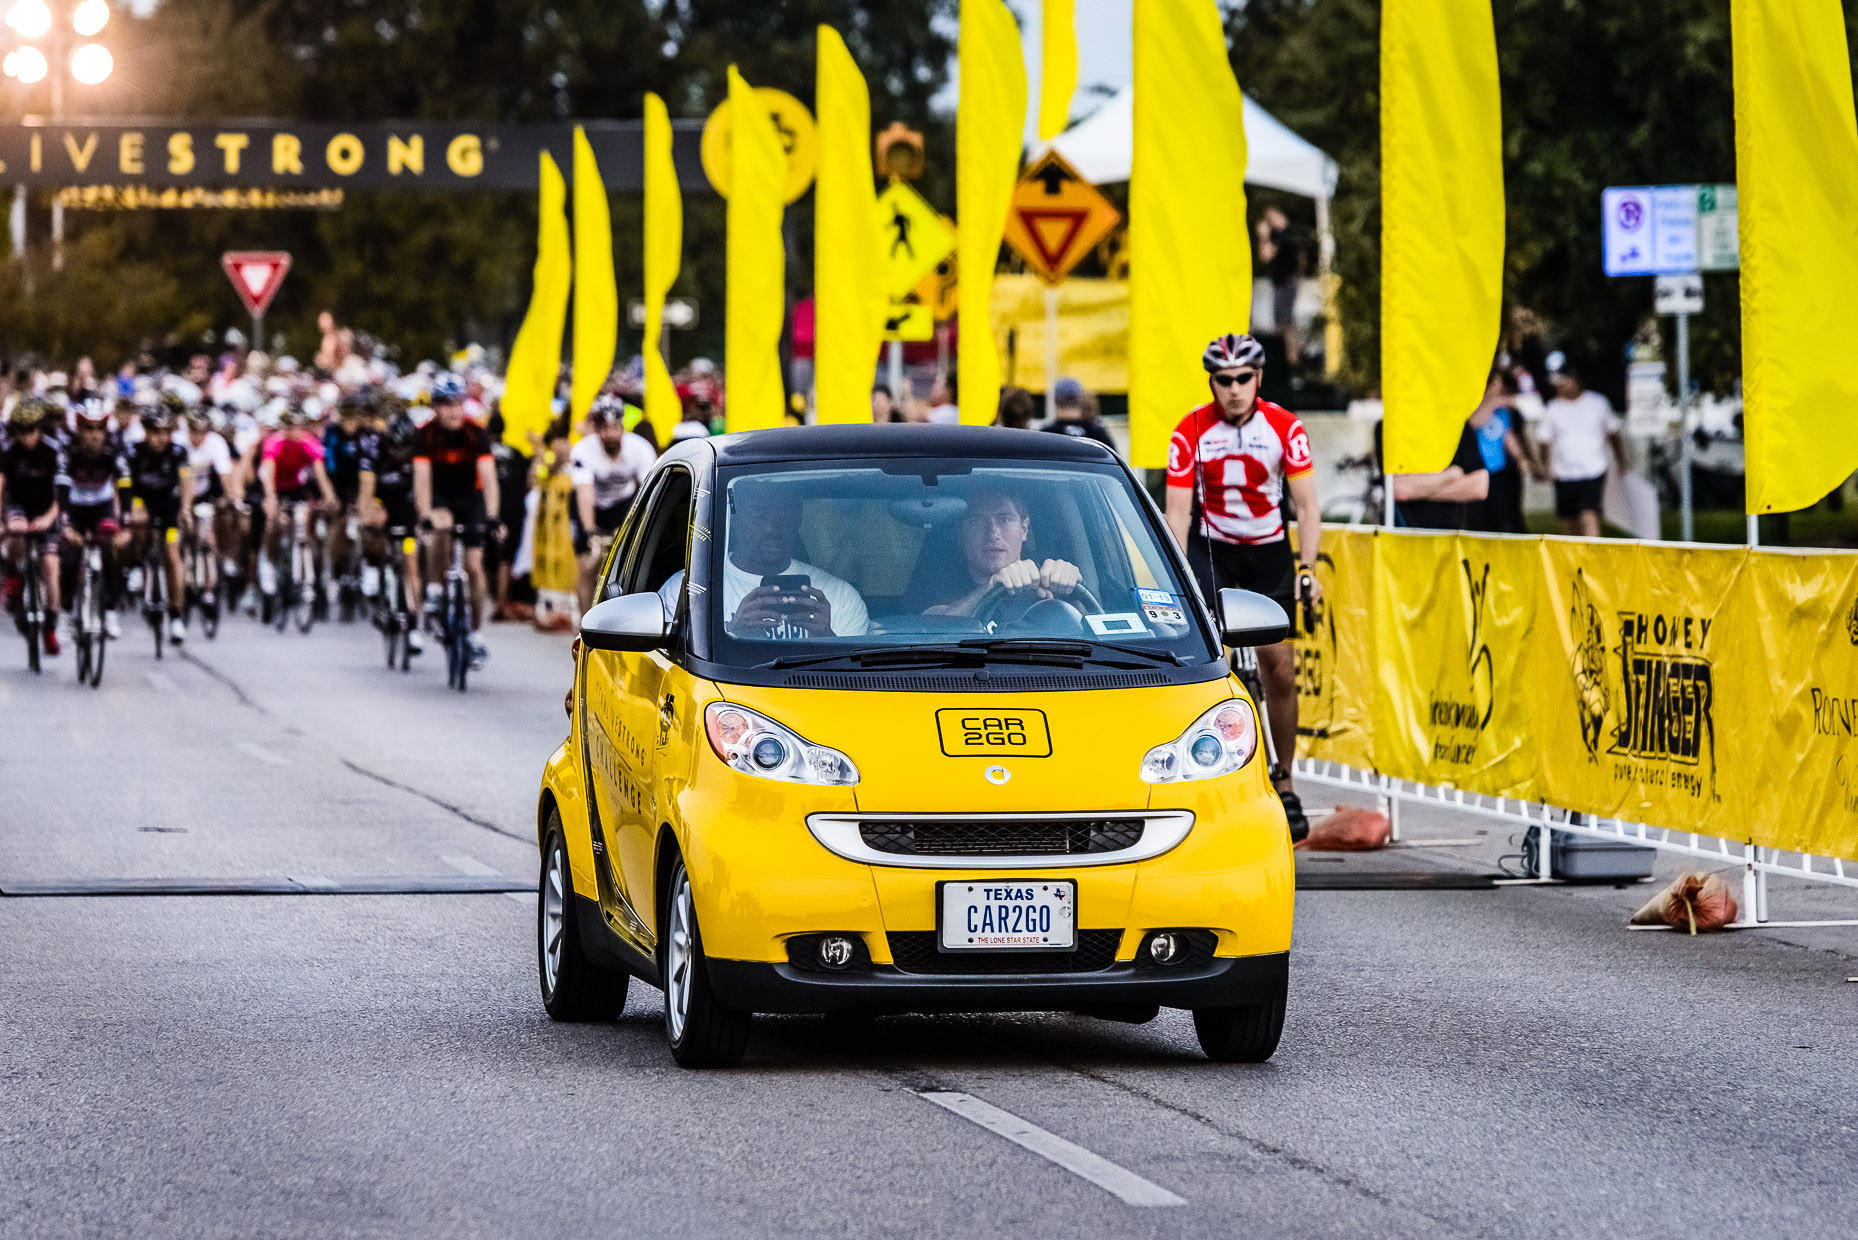 Livestrong-Austin-Commercial-Event-Photographer-car2go.jpg